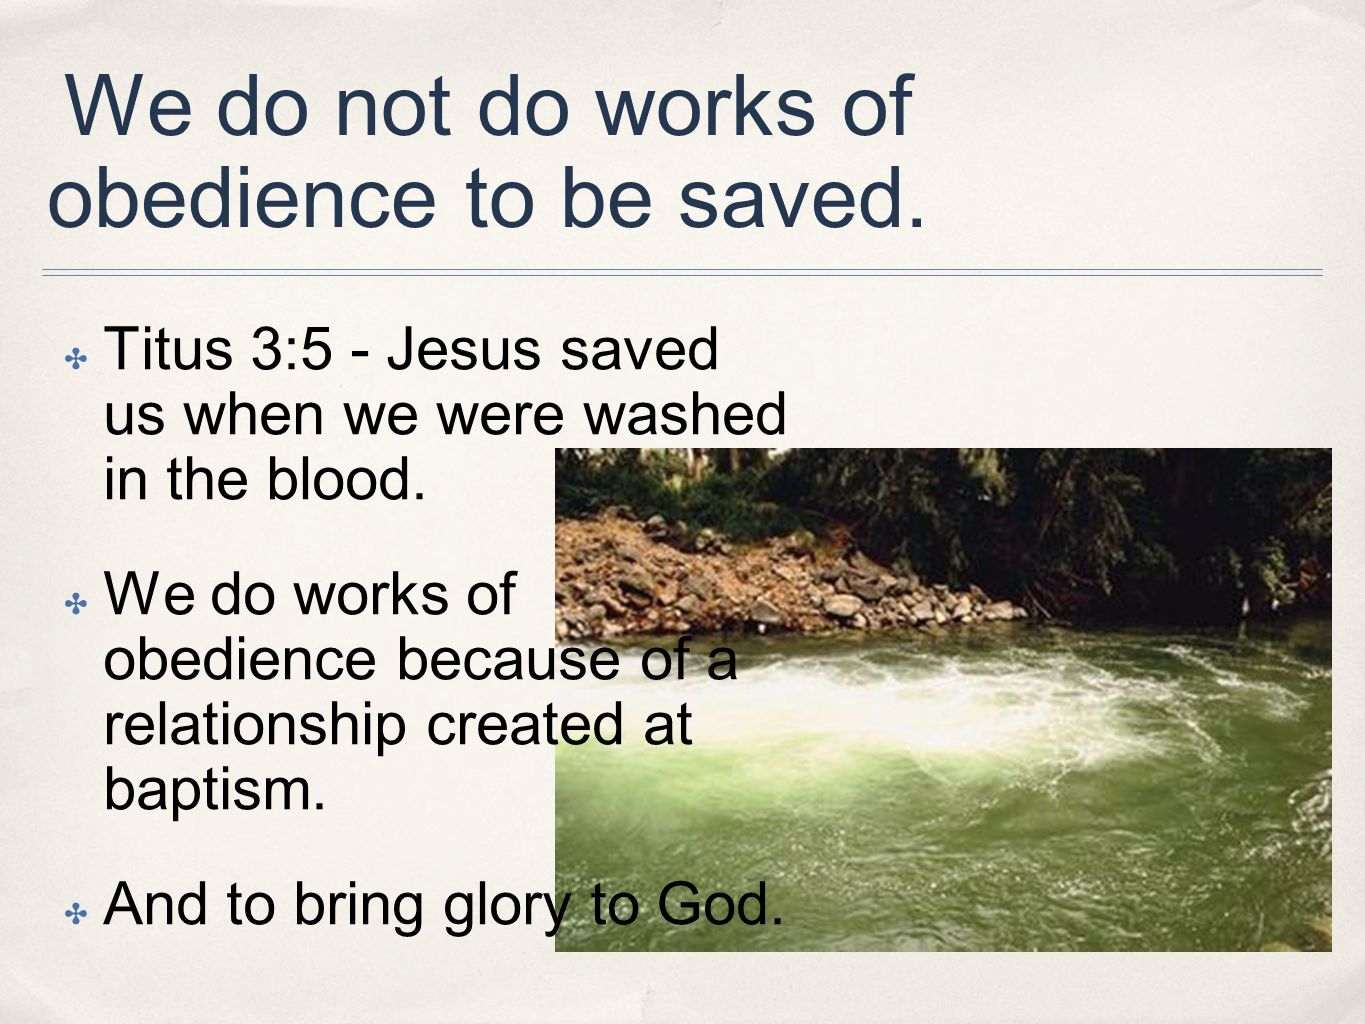 We do not do works of obedience to be saved.